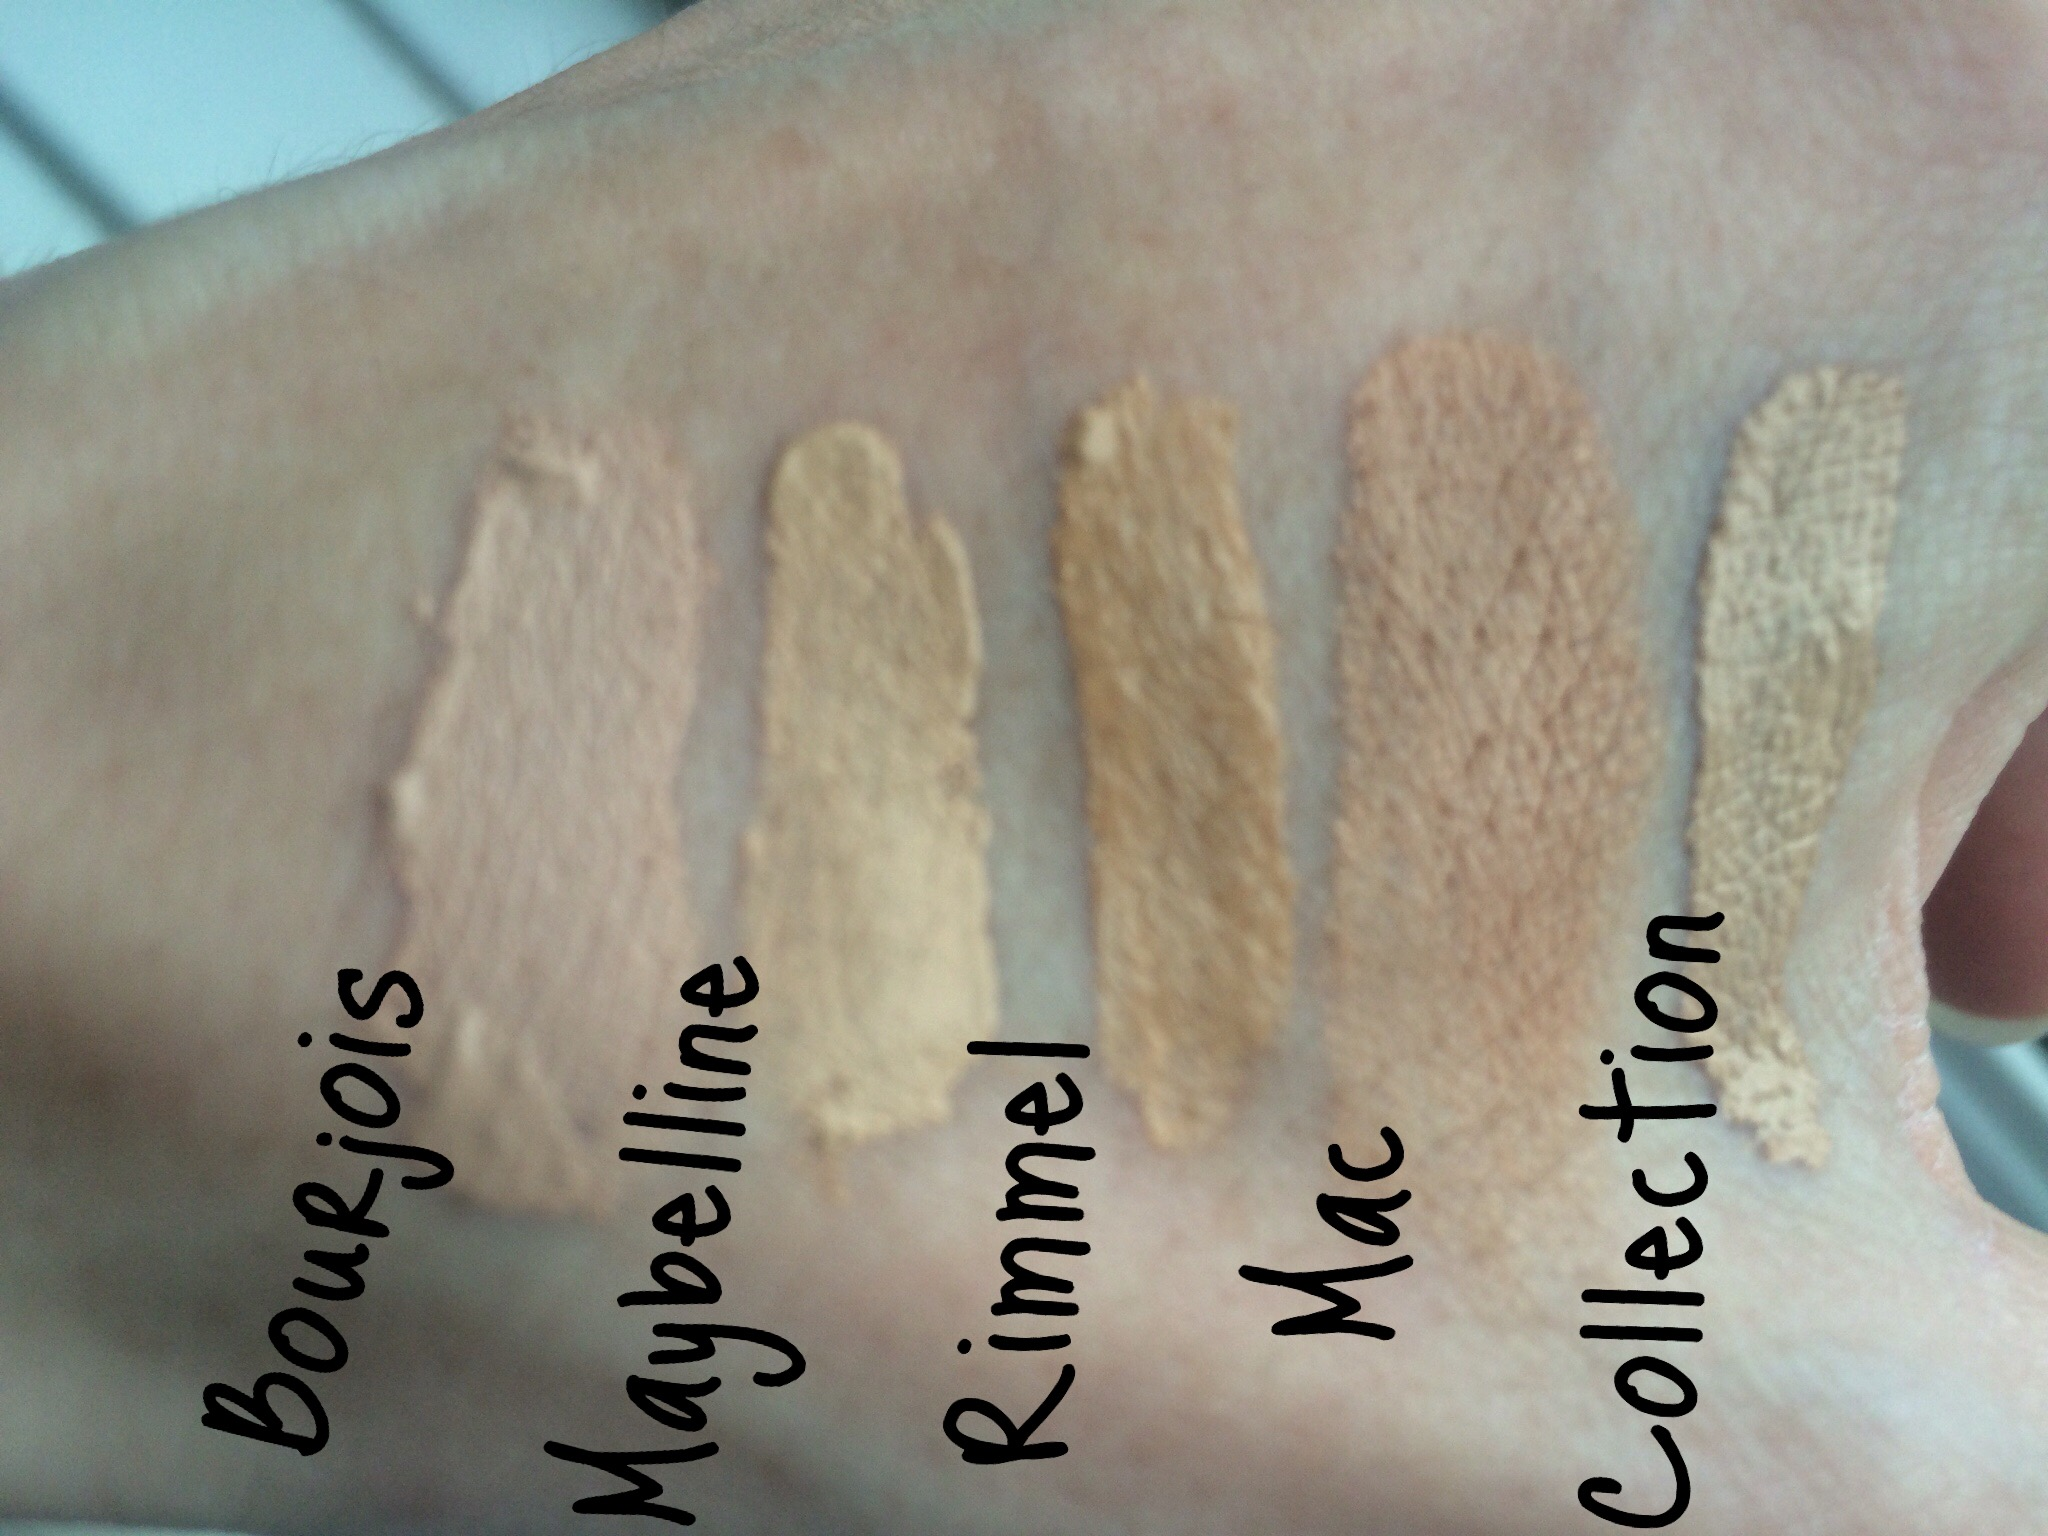 concealer-review-mac-studio-finish-bourjois-healthy-mix-collection-lasting-perfection-rimmel-maybelline-superstay